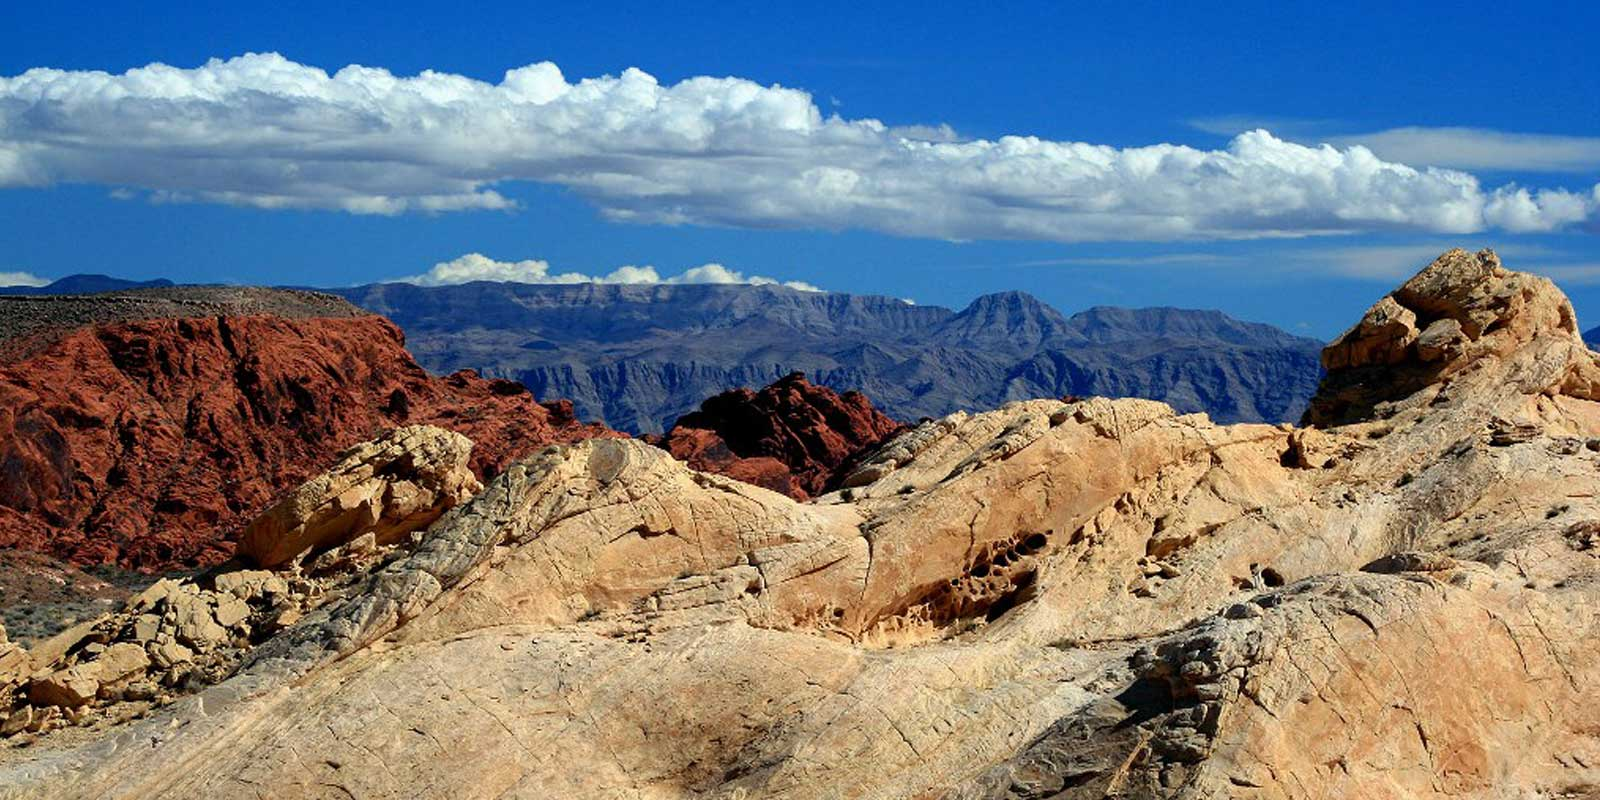 Landscape photo of the canyons at Valley of Fire State Park in Nevada with perfect blue skies.